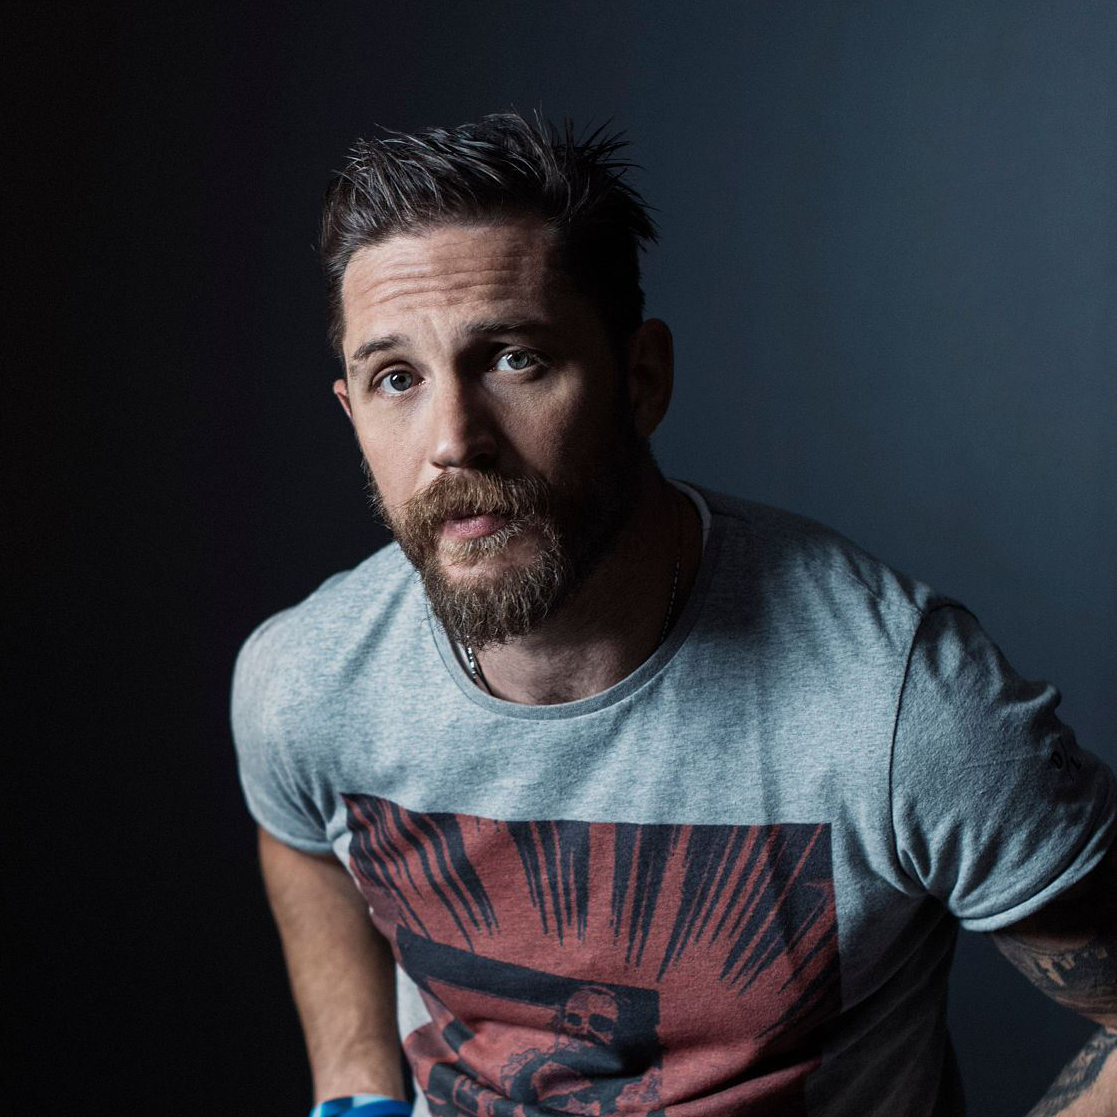 Tom Hardy Wallpapers PC 4R63W8C WallpapersExpertcom 1117x1117